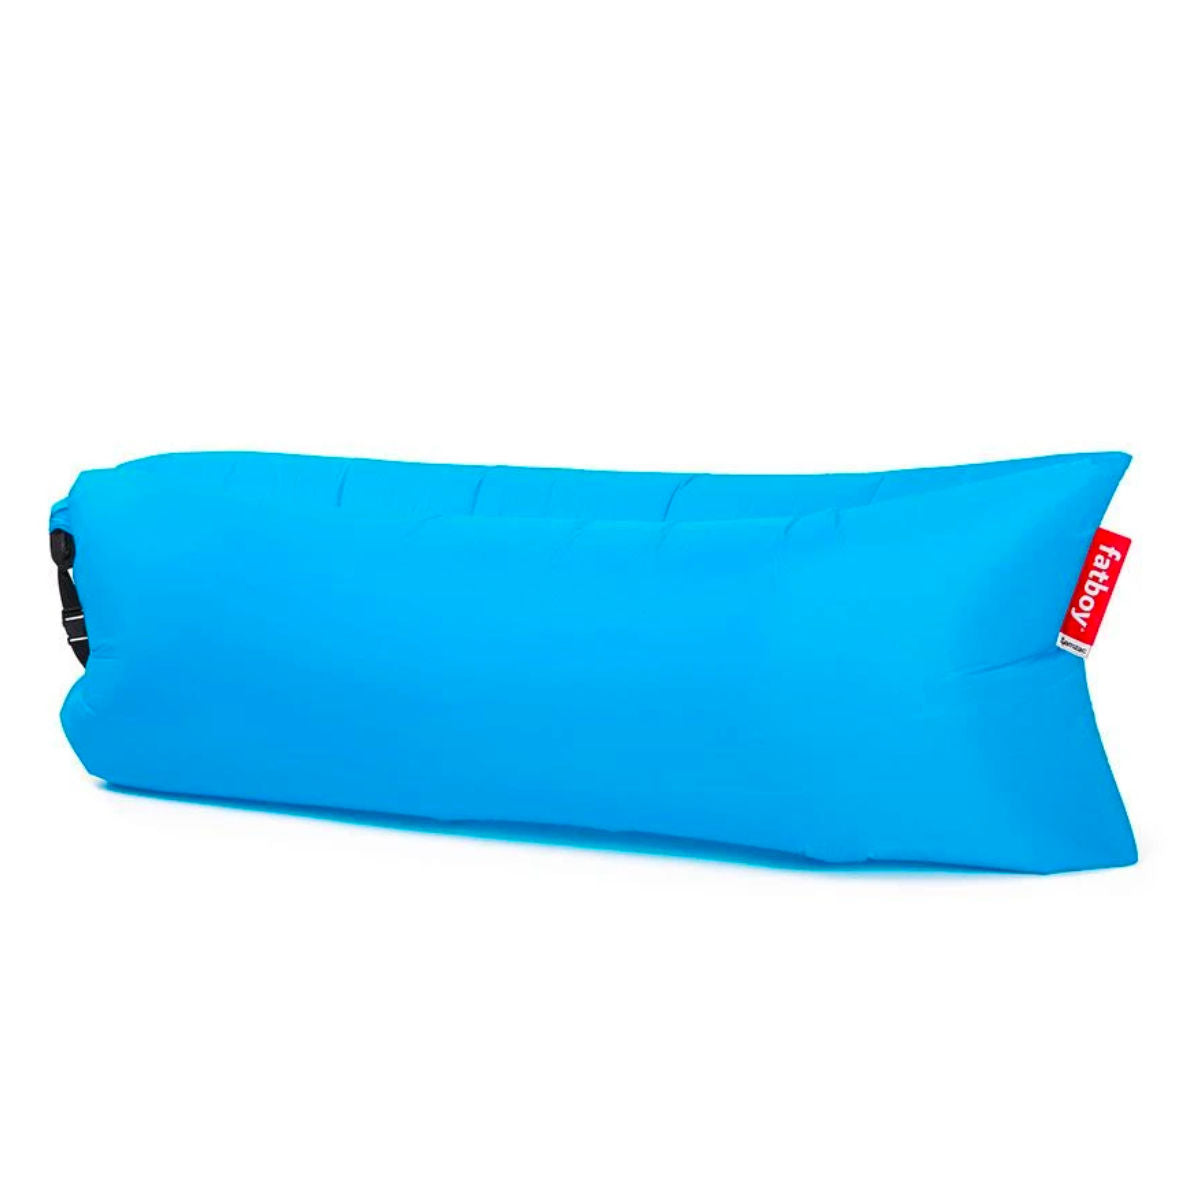 Fatboy Lamzac air lounger, aqua blue